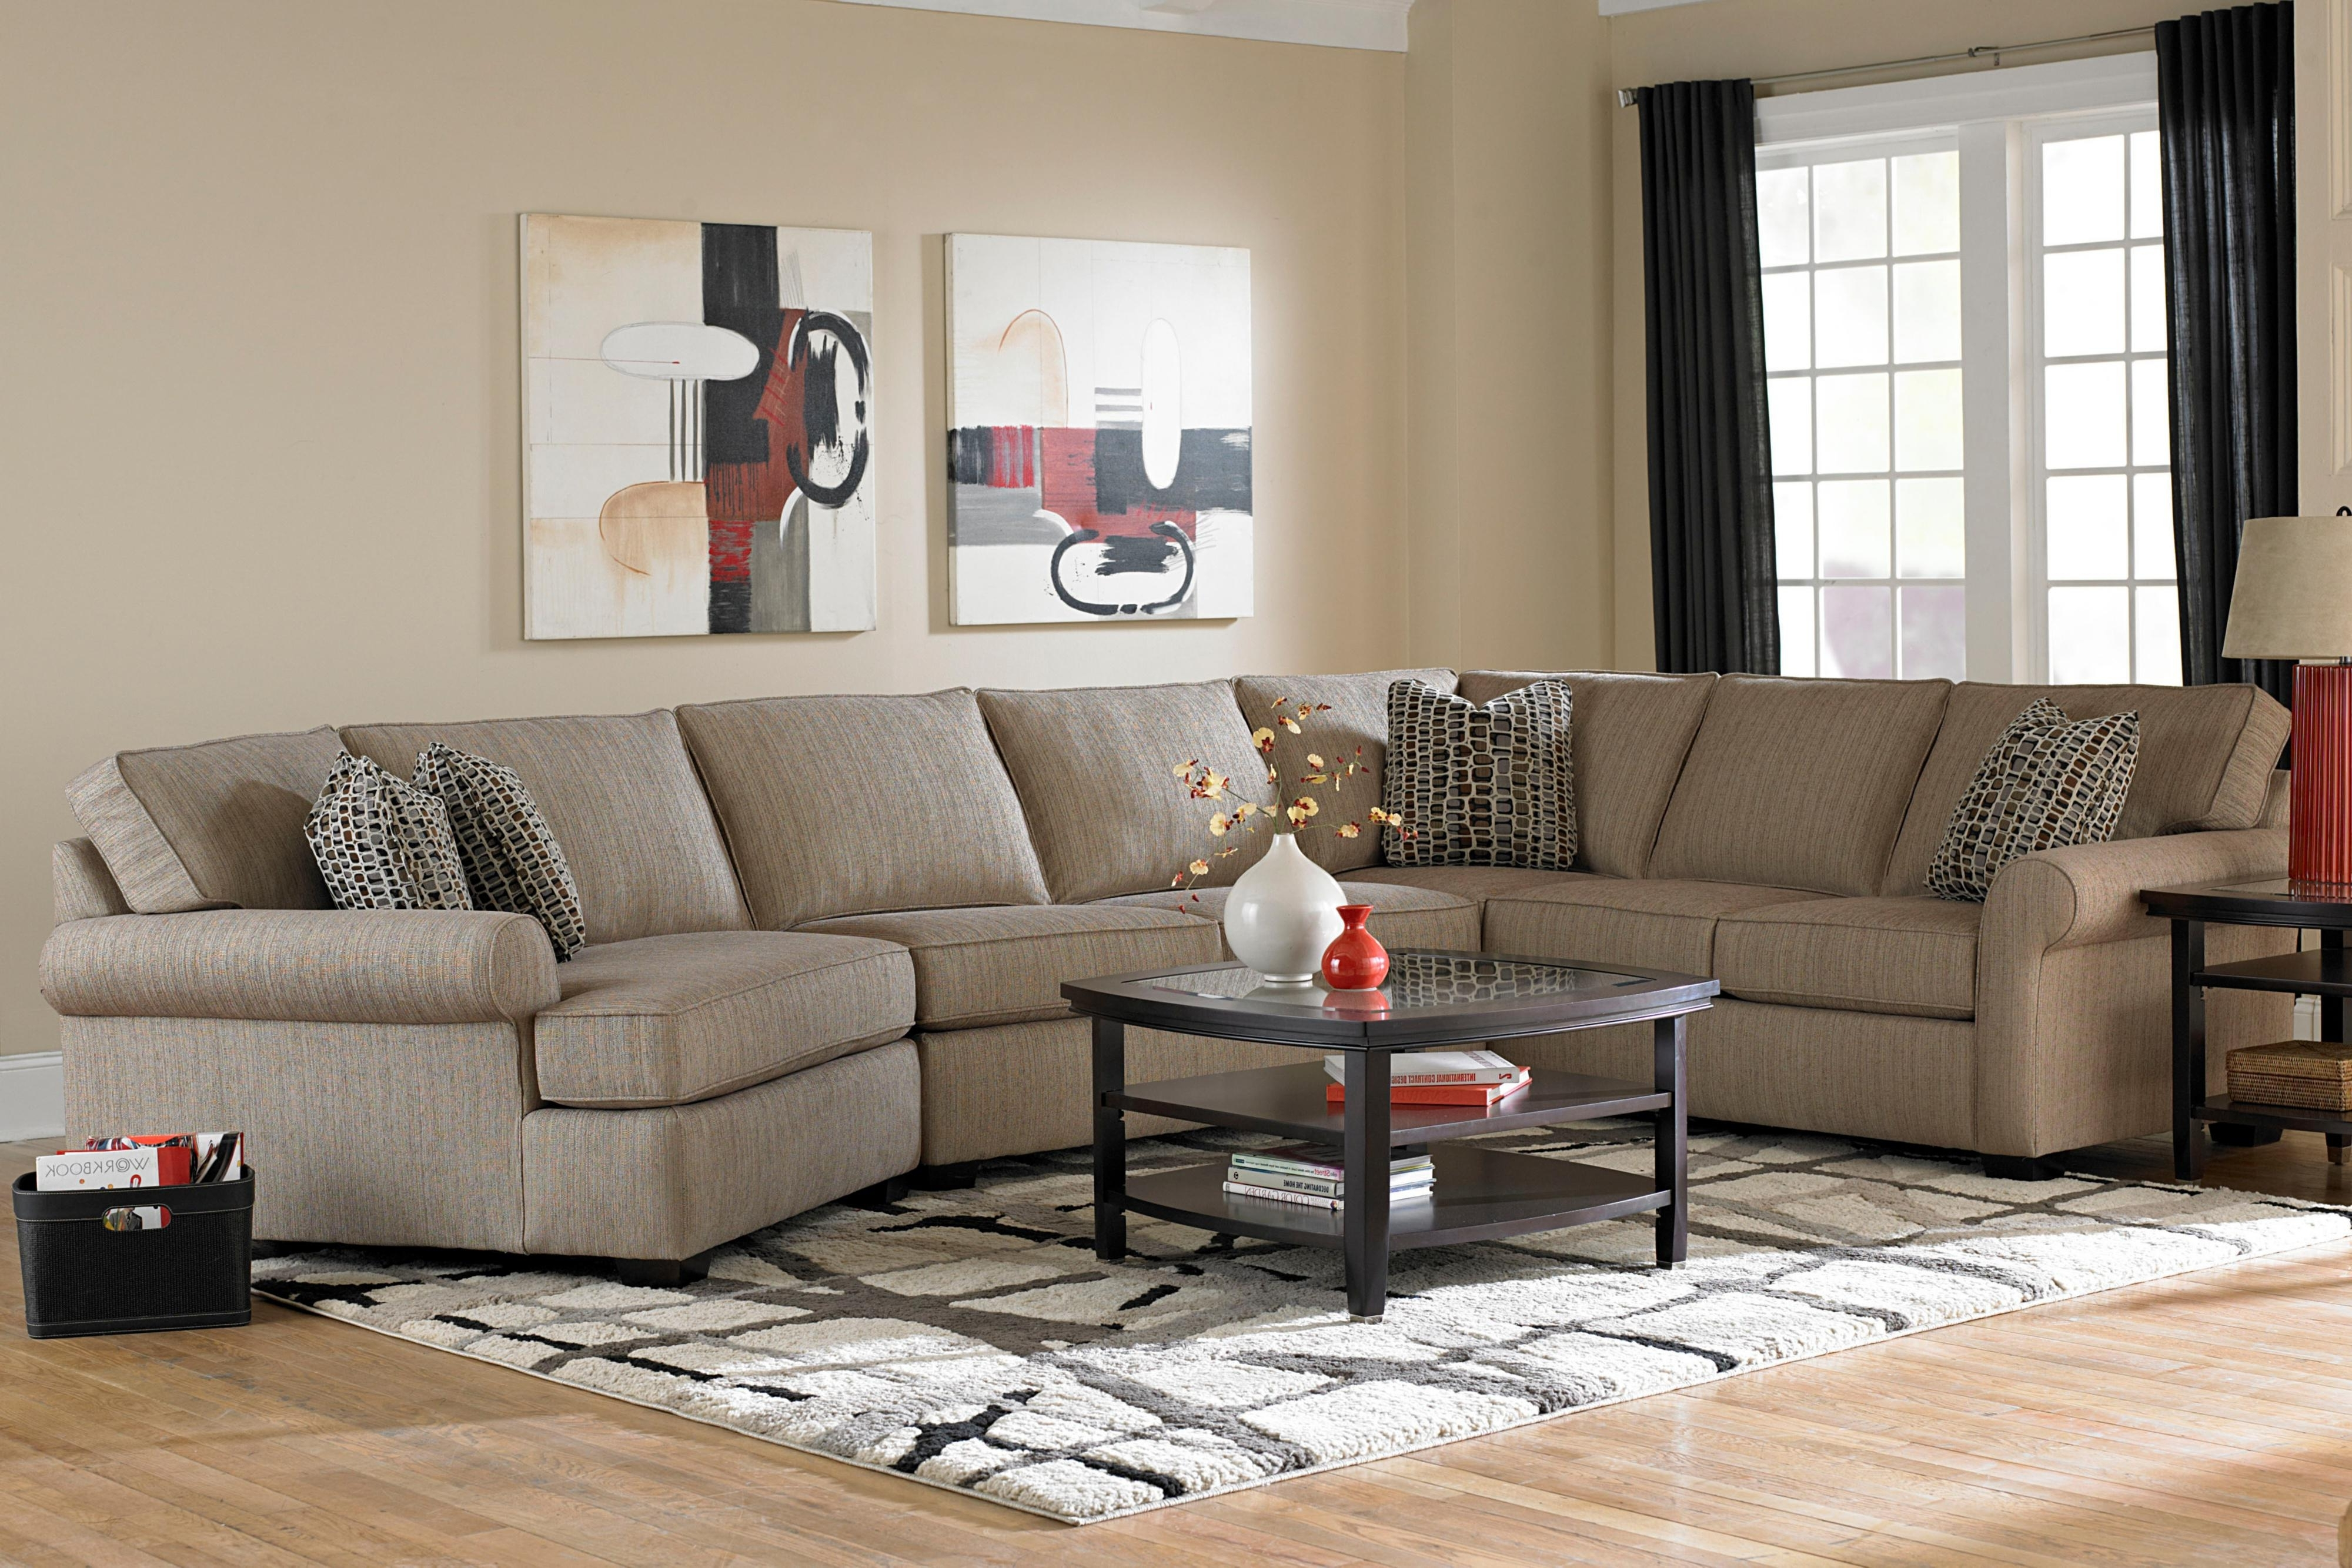 Eau Claire Wi Sectional Sofas With Regard To Best And Newest Broyhill Furniture Ethan Transitional Sectional Sofa With Right (View 3 of 20)